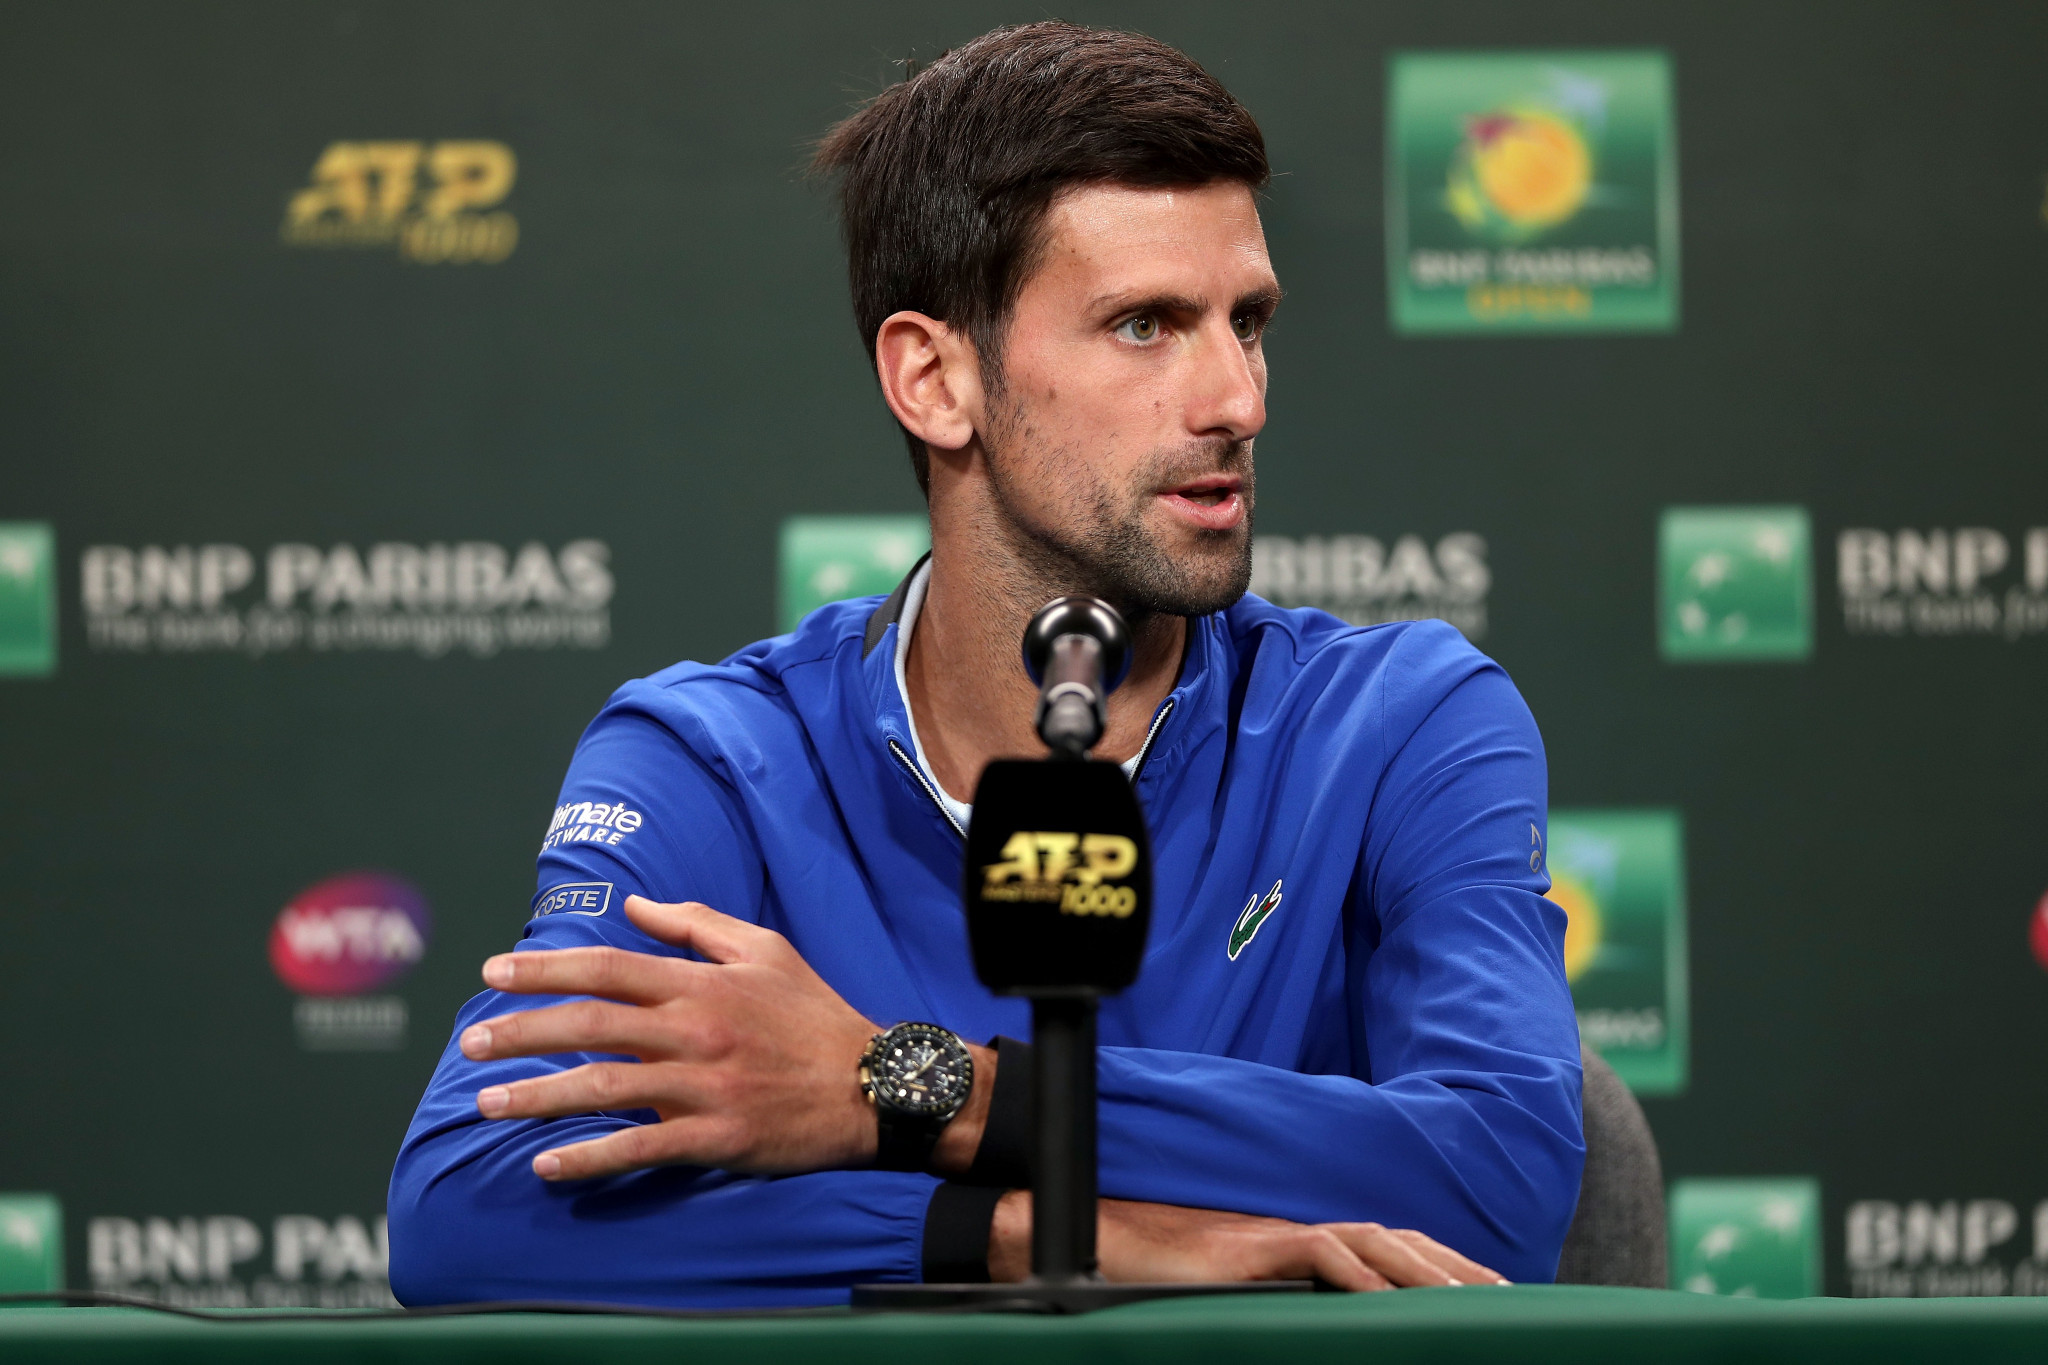 Speaking in Indian Wells Novak Djokovic refused to say whether he backed Chris Kermode's removal ©Getty Images